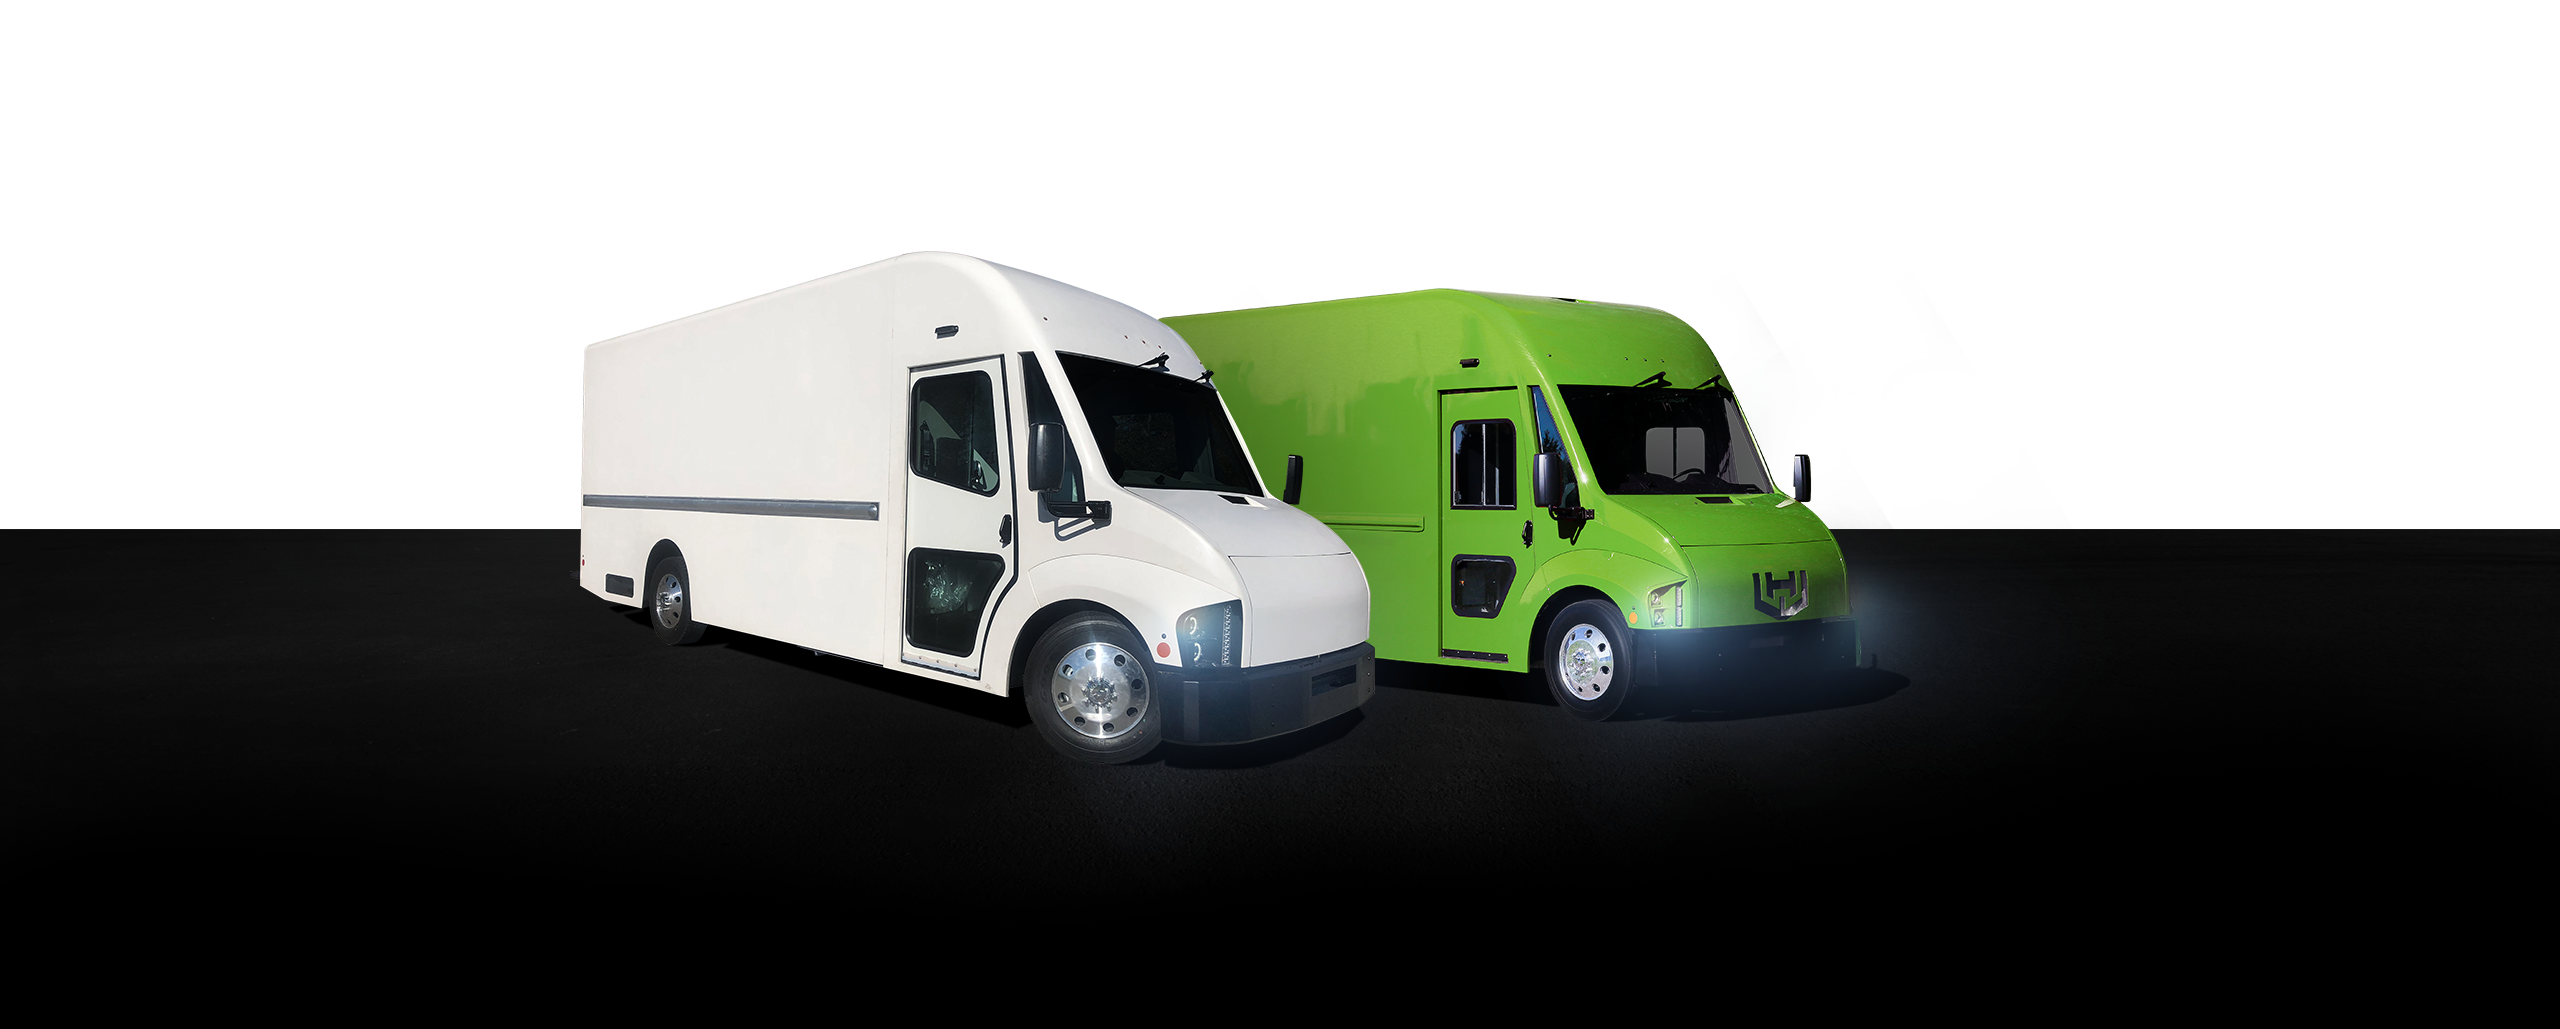 Workhorse logo above C650 & C1000 electric vans side by side